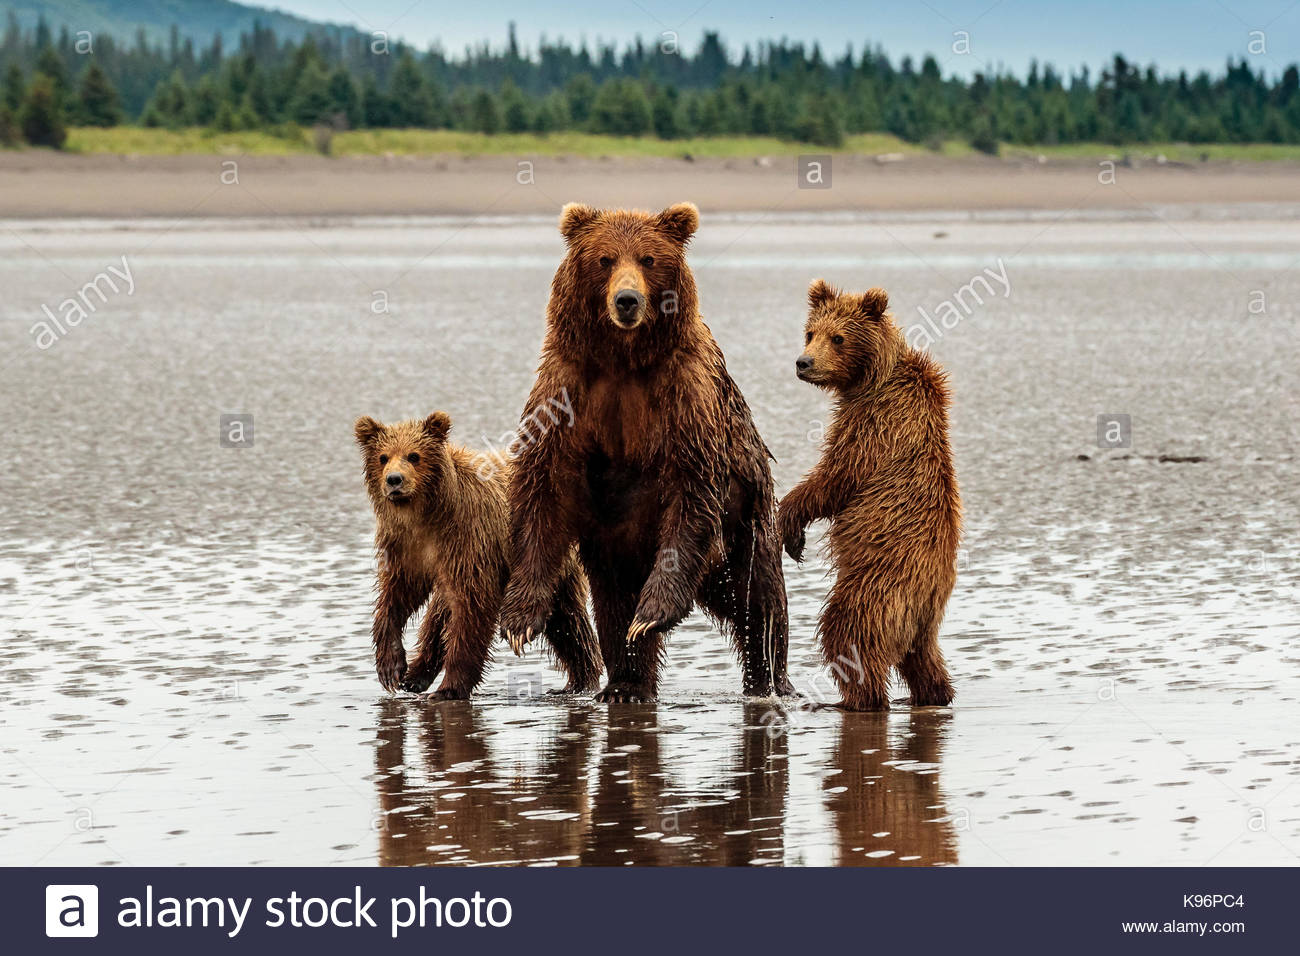 Coastal brown bear, Ursus arctos,  family at Sliver Salmon Creek in Lake Clark National Park, Alaska. - Stock Image